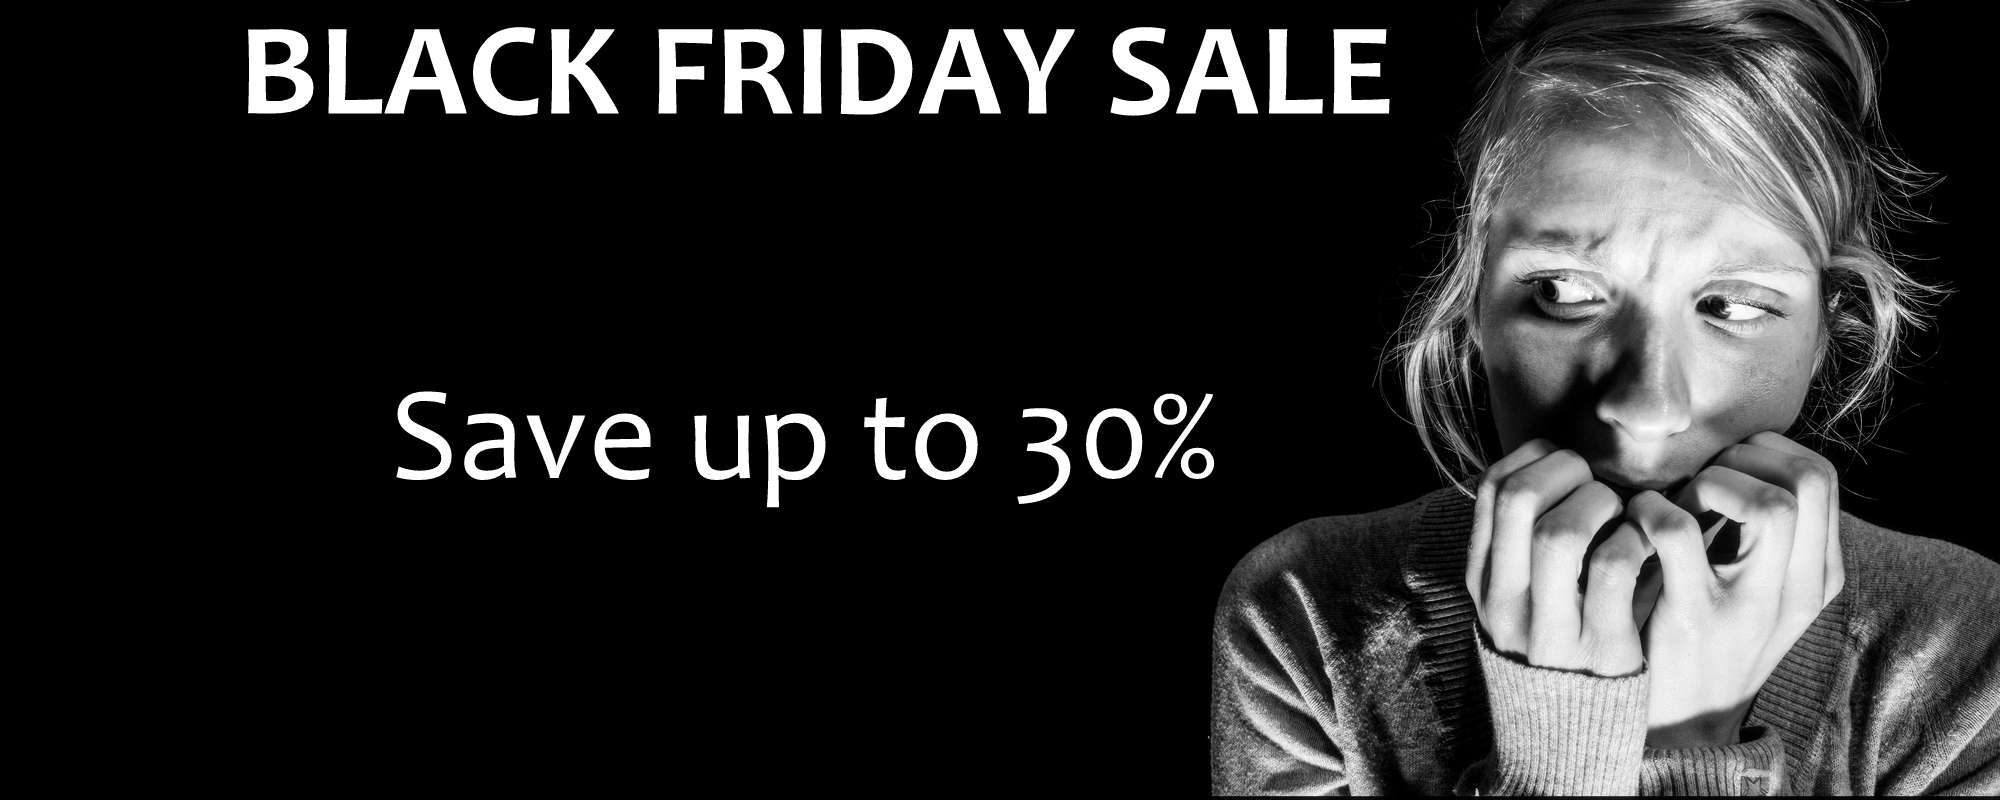 BLACK FRIDAY SALE 2018 SAVE UP TO 30%